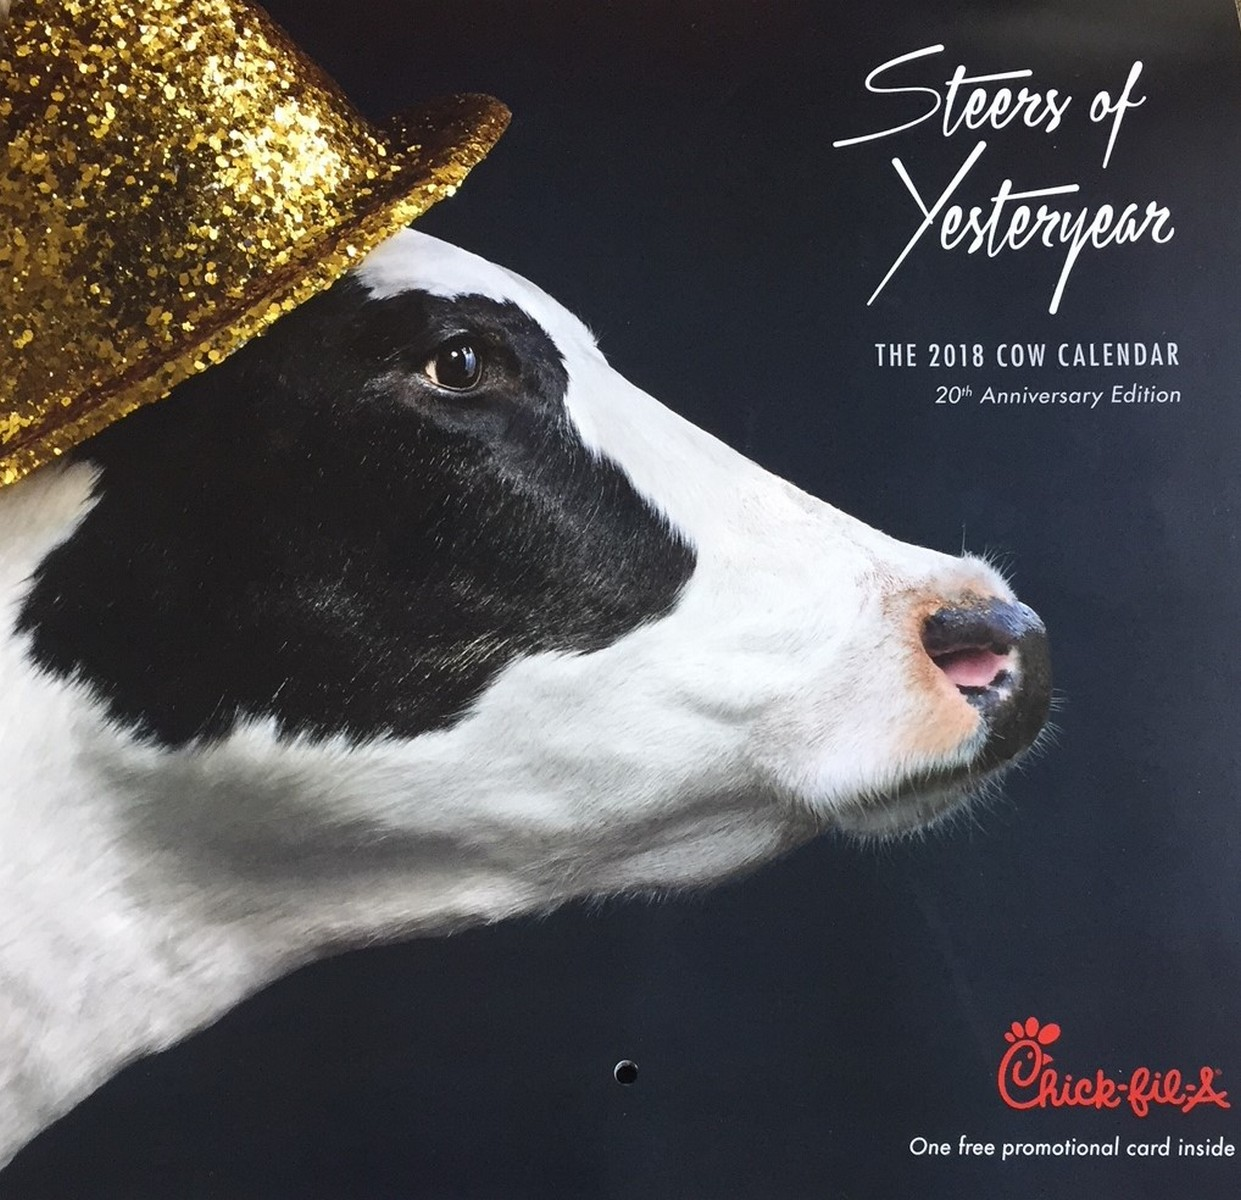 How to get Discounted Chick-fil-A in 2018